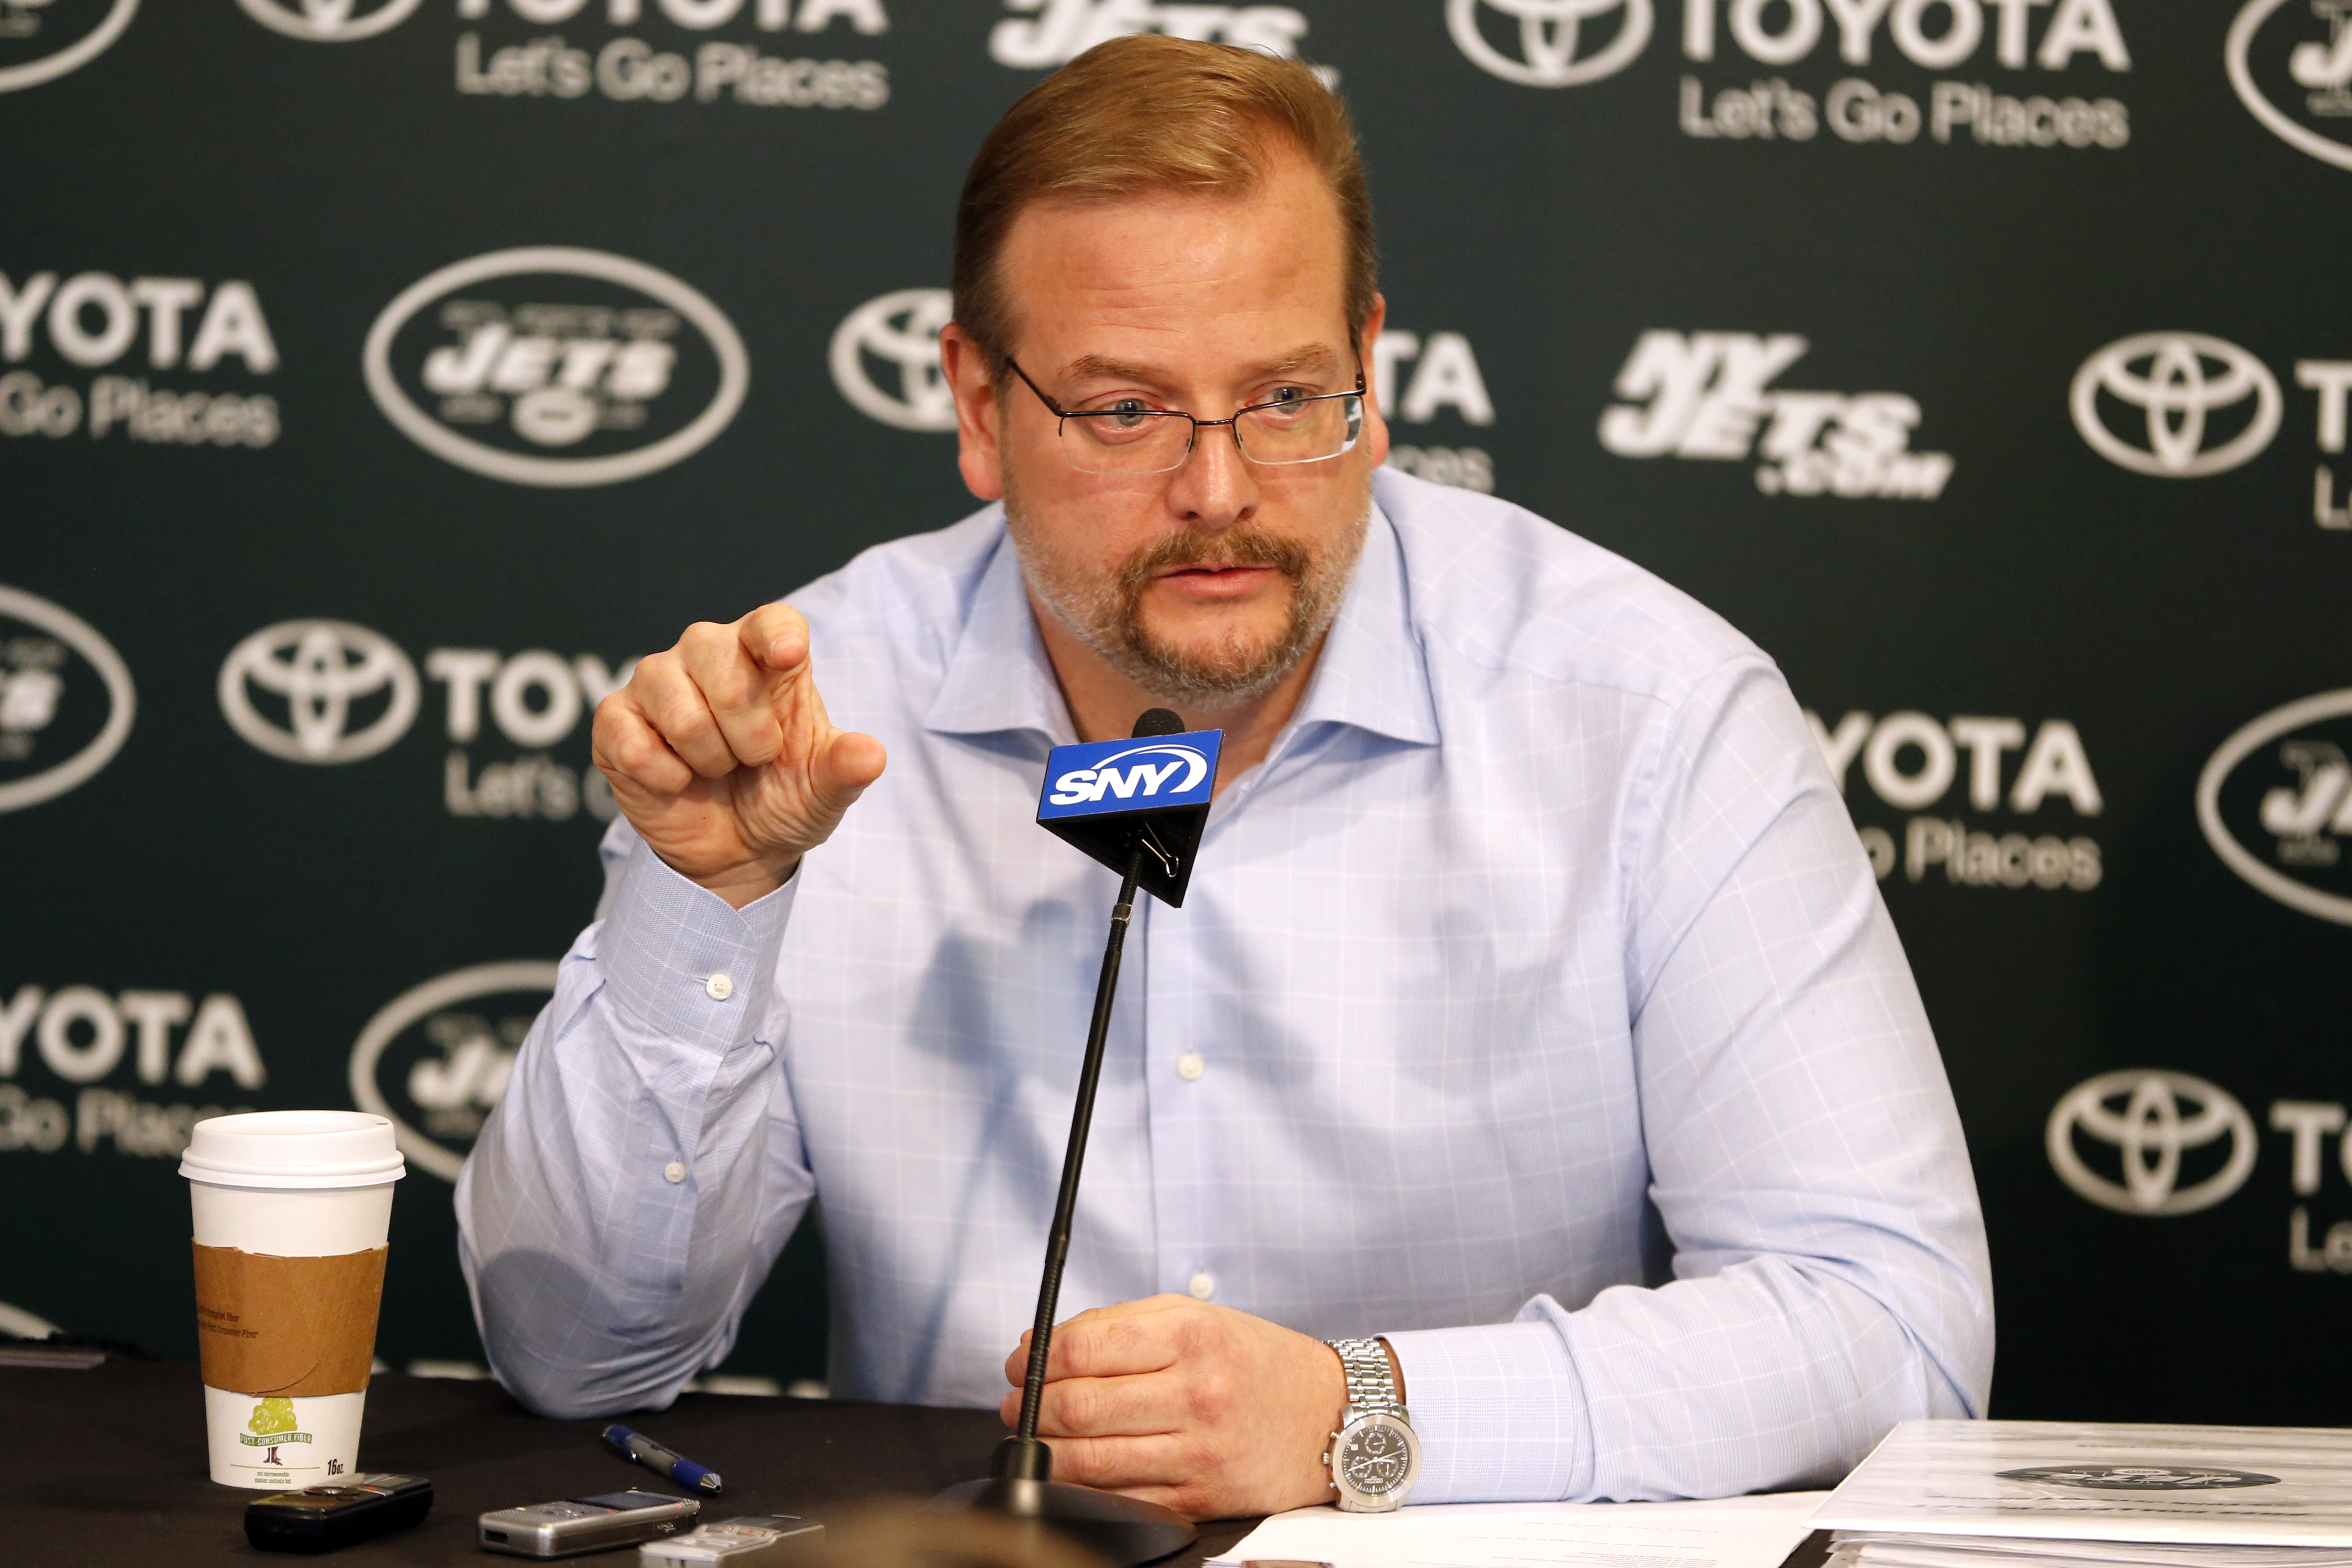 FILE - In this April 24, 2015, file photo, New York Jets general manager Mike Maccagnan speaks to reporters during a news conference in Florham Park, N.J. The 48-year-old Maccagnan is the man charged with returning the franchise to respectability after ow